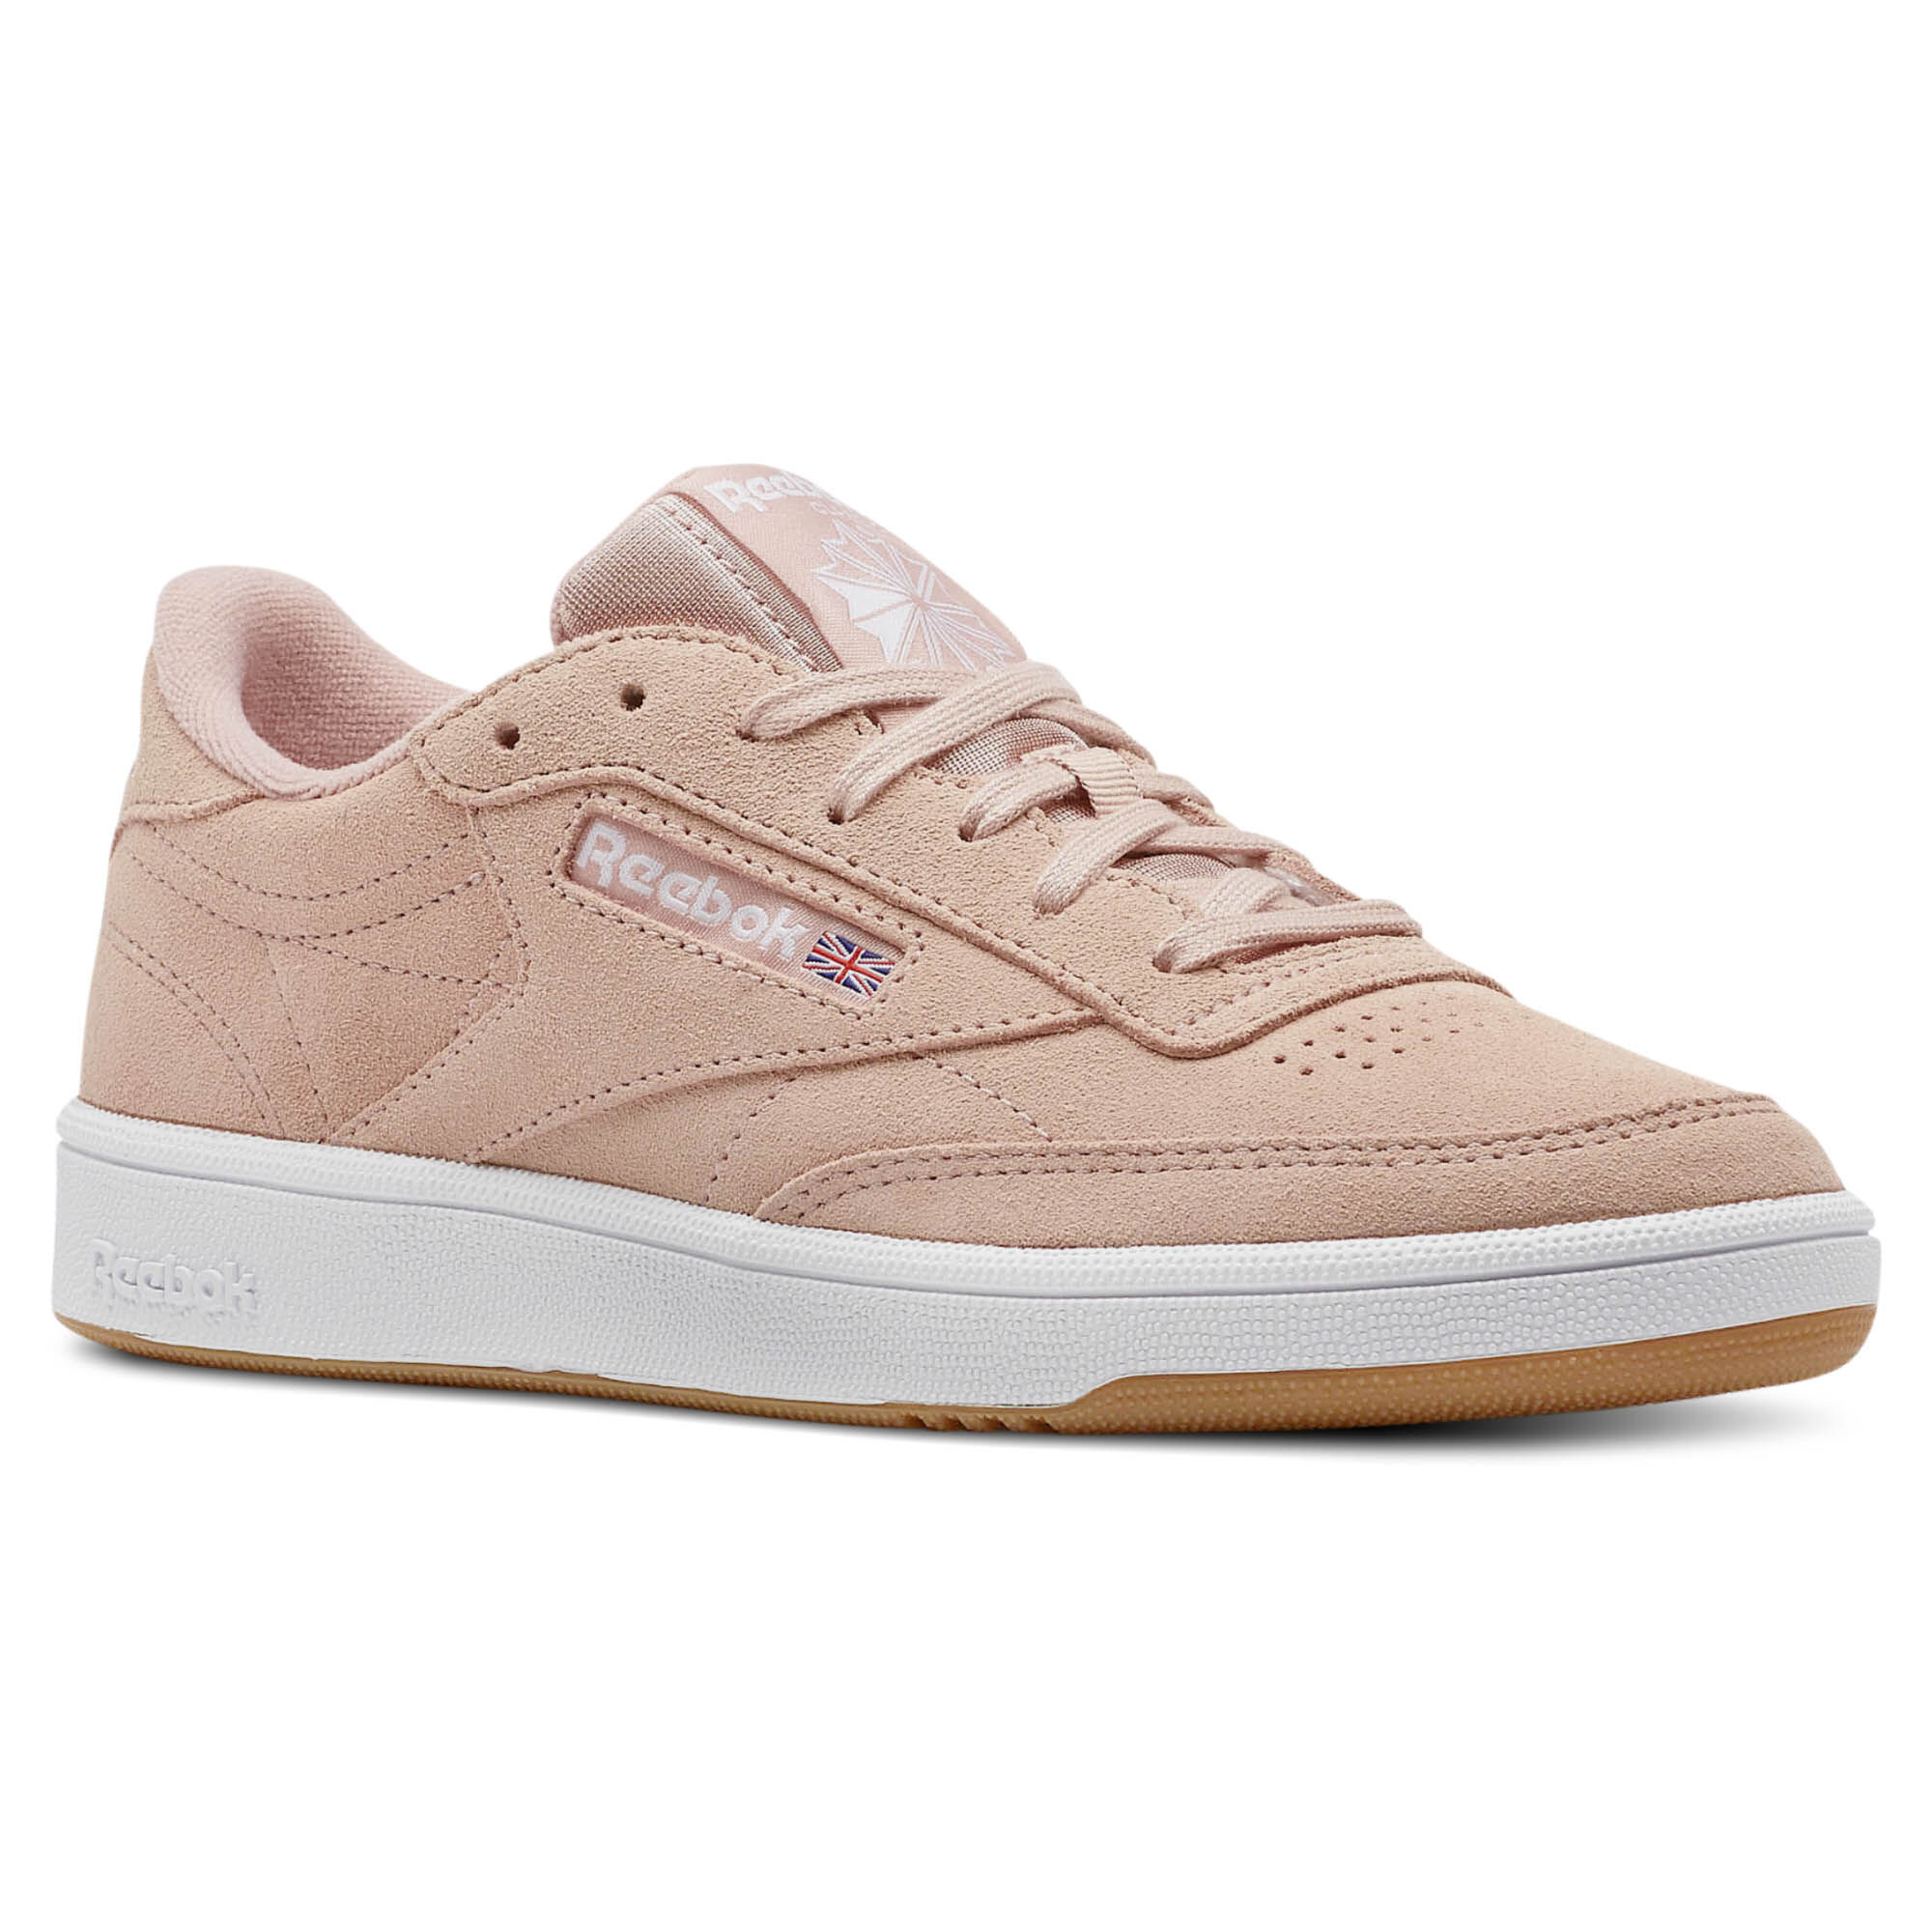 Schuhe Reebok - Club C 85 CN5202 Peach Twist/Gum/White iwVht